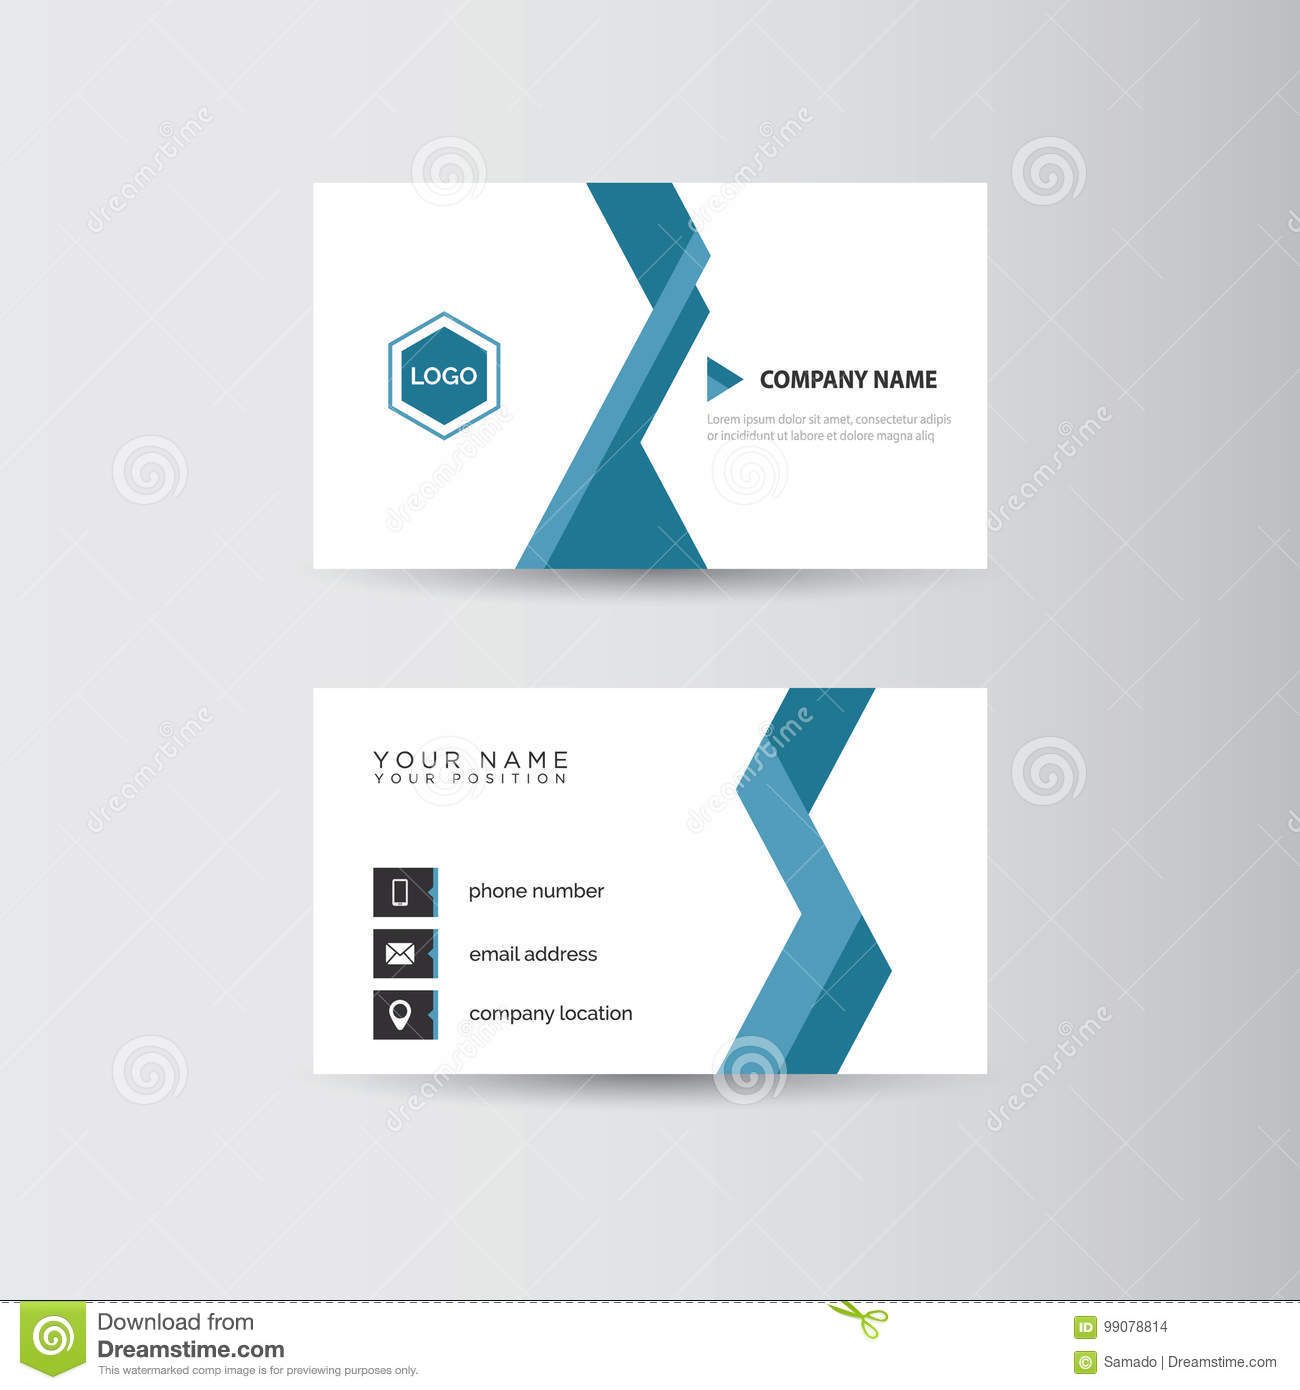 Business card template stock vector. Illustration of letterhead ...